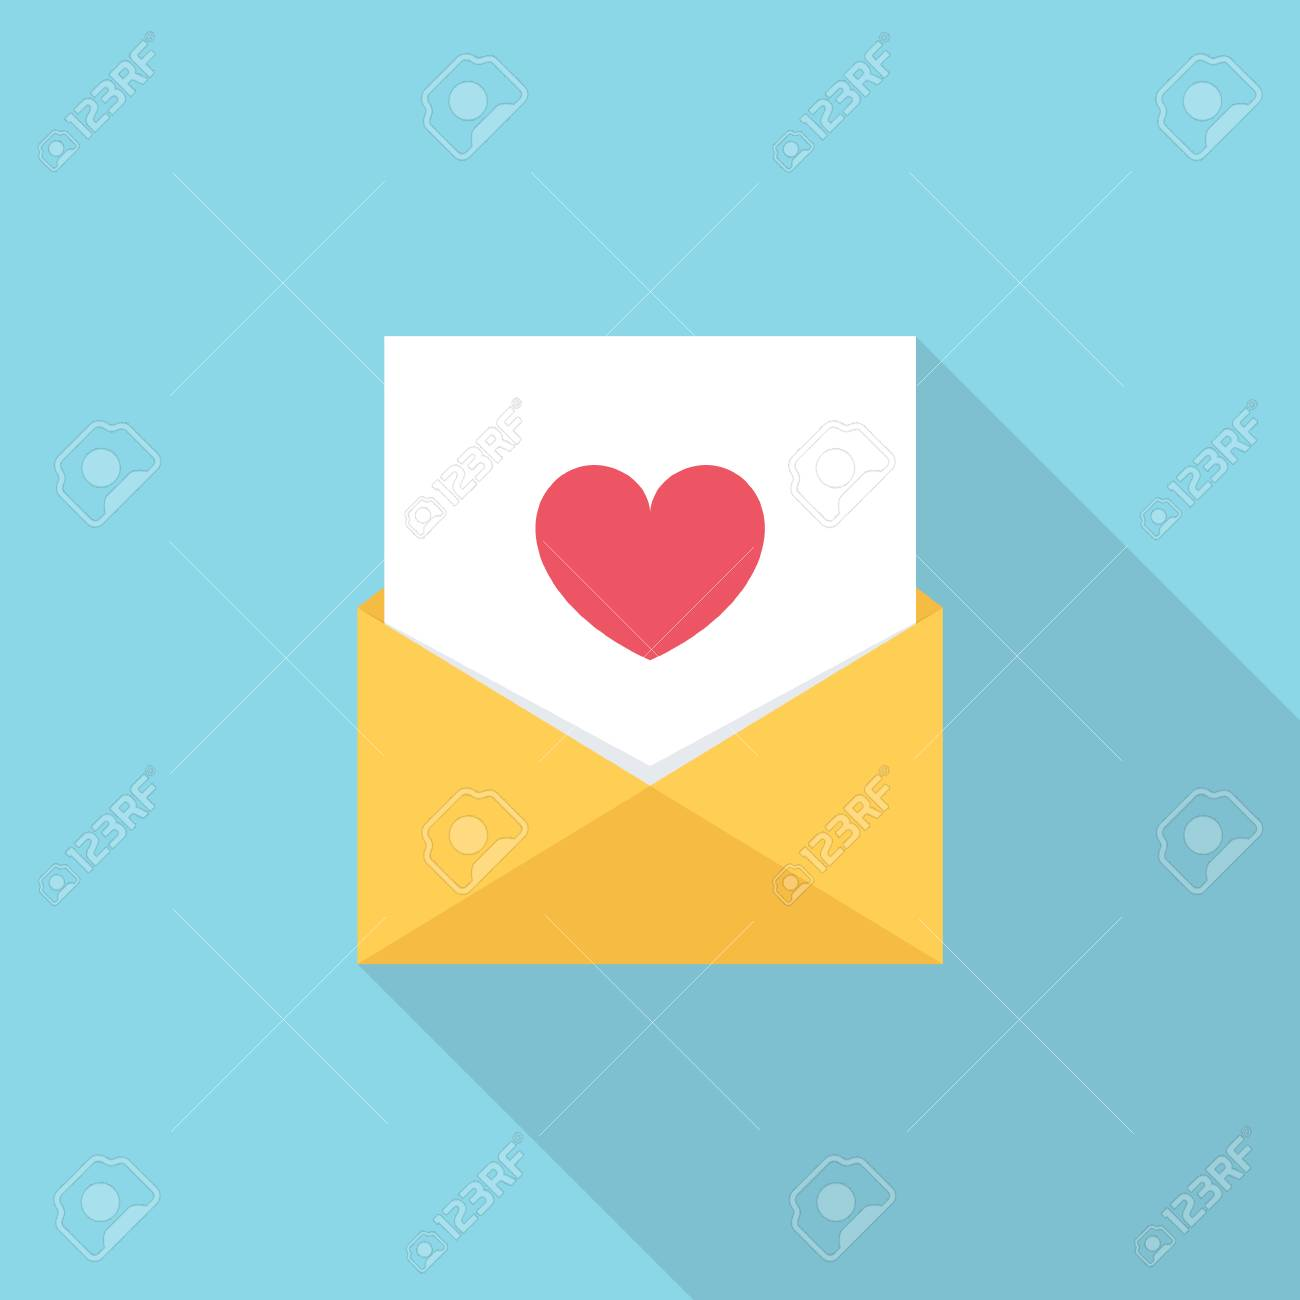 Letter Email Or Message With Heart Symbol Flat Style Vector